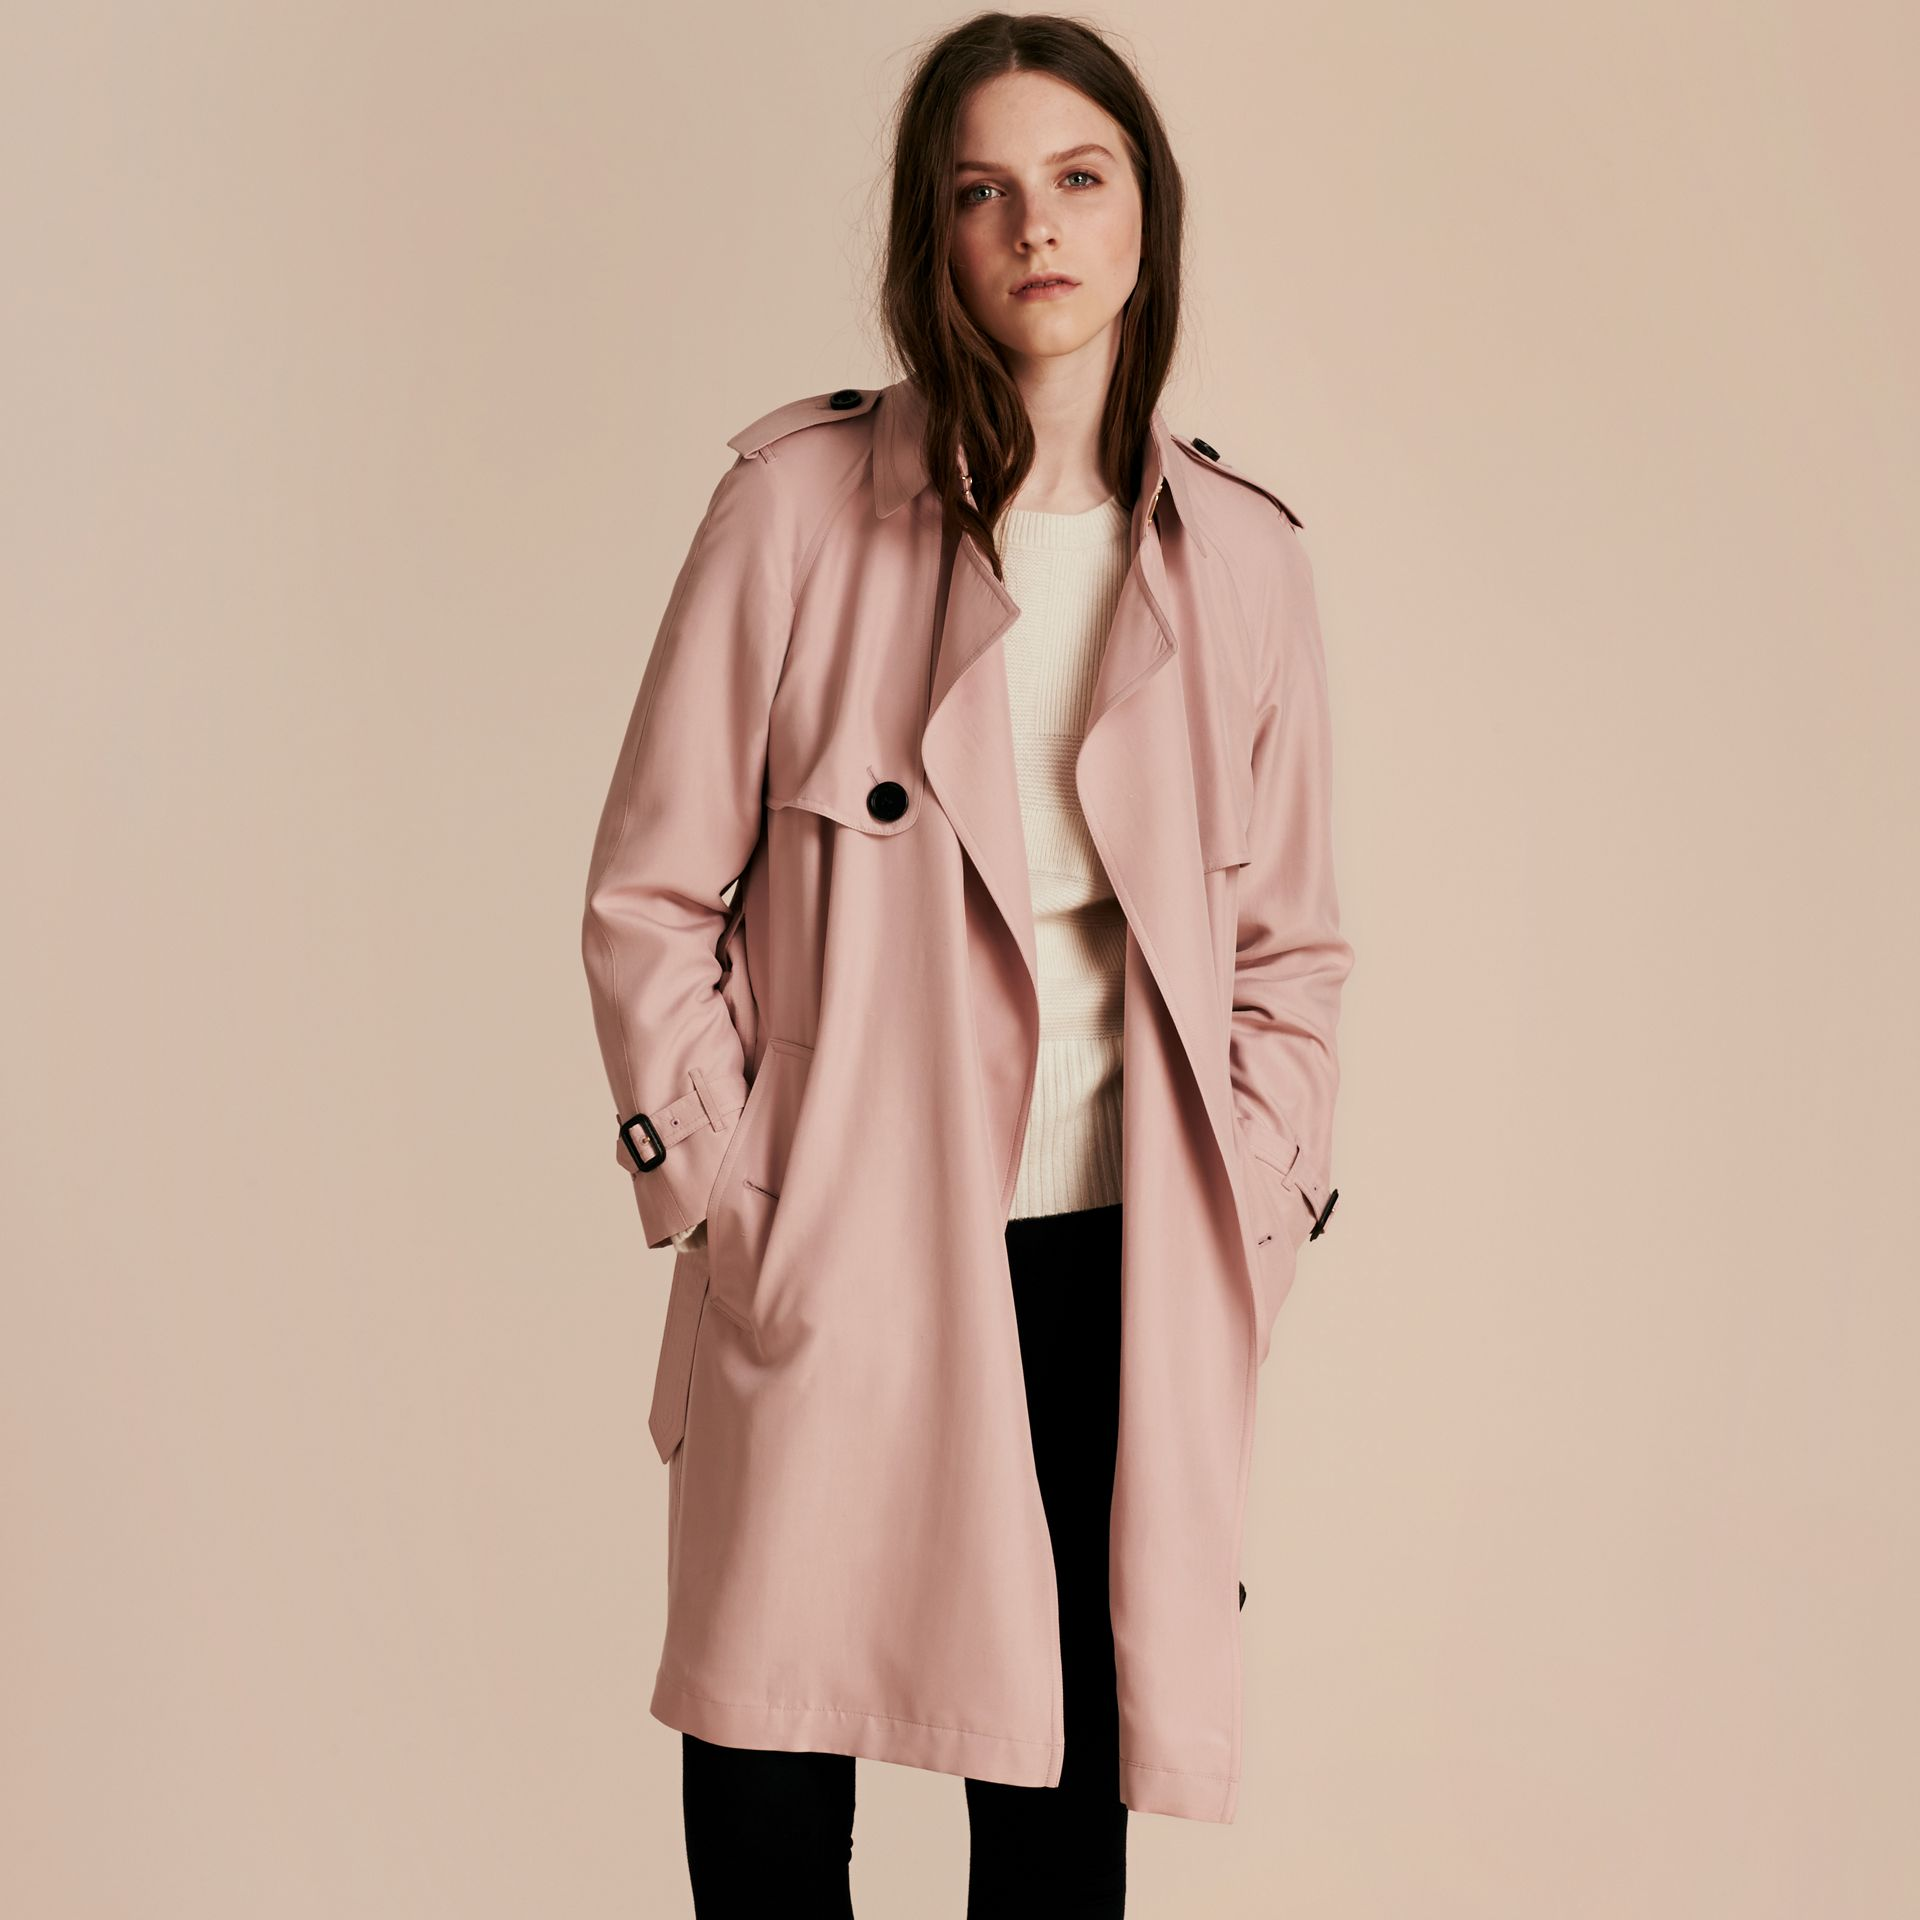 Rose craie Trench-coat portefeuille léger en soie flammée - photo de la galerie 7